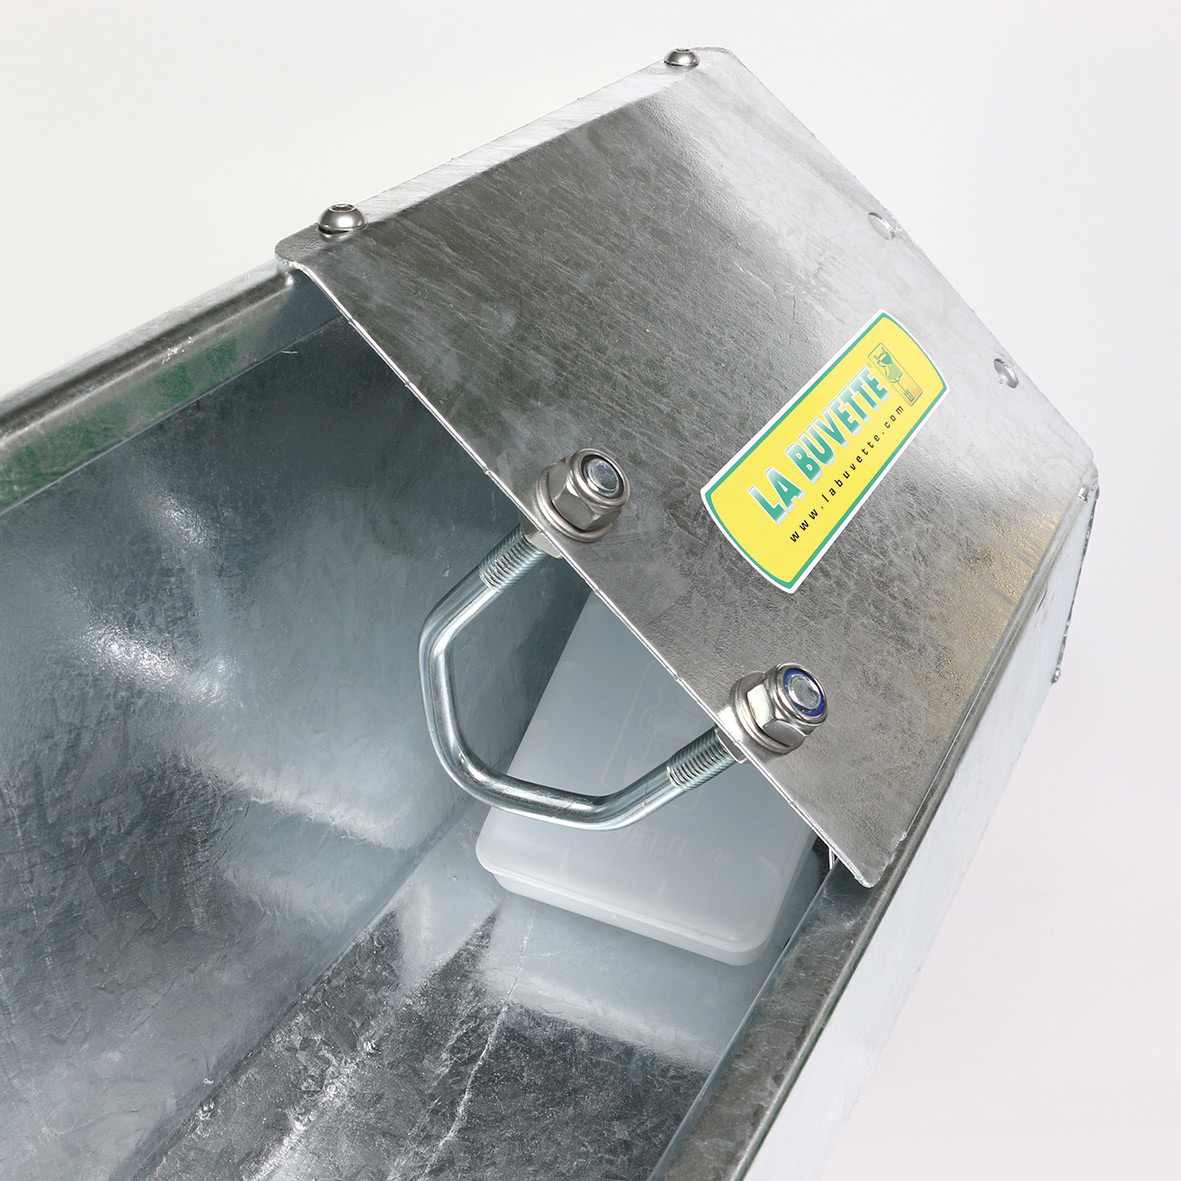 OVICAP 120 GALVANISED DRINKING TROUGH